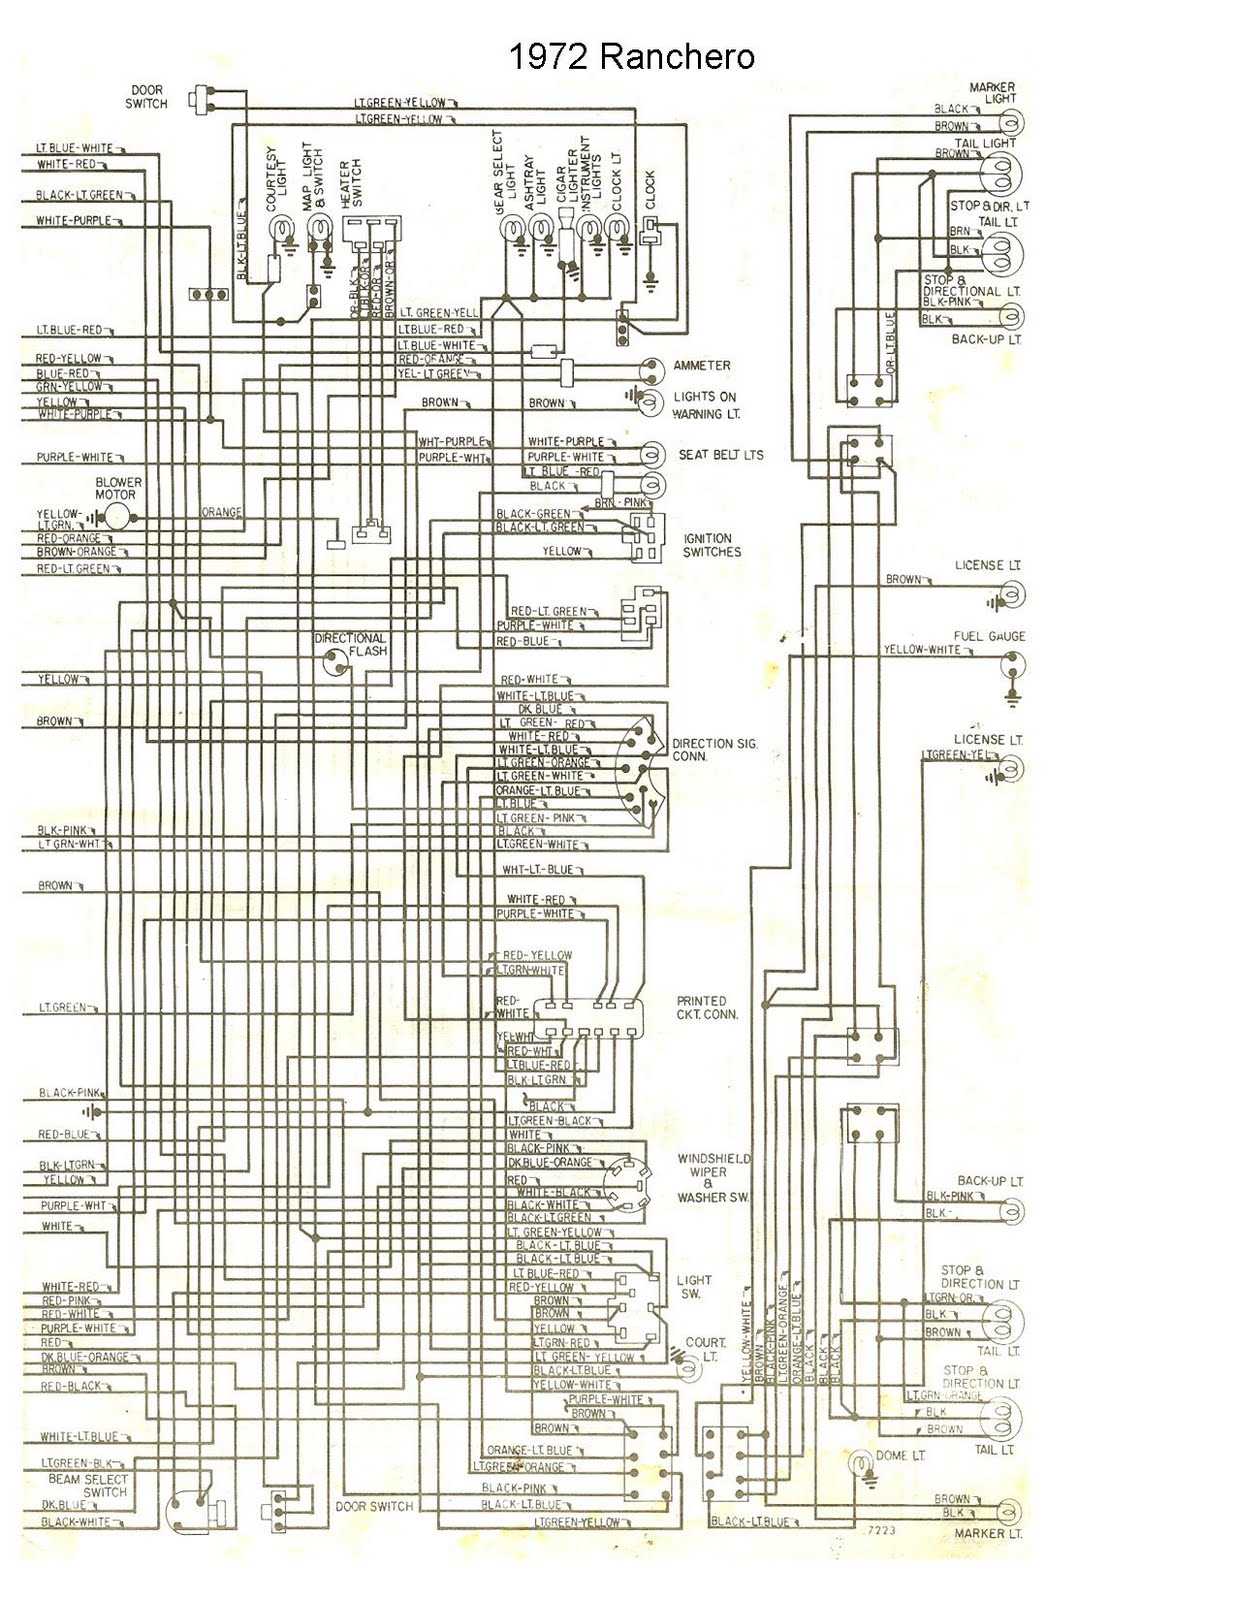 1958 ford wiring diagram audi s5 engine diagram, Wiring diagram